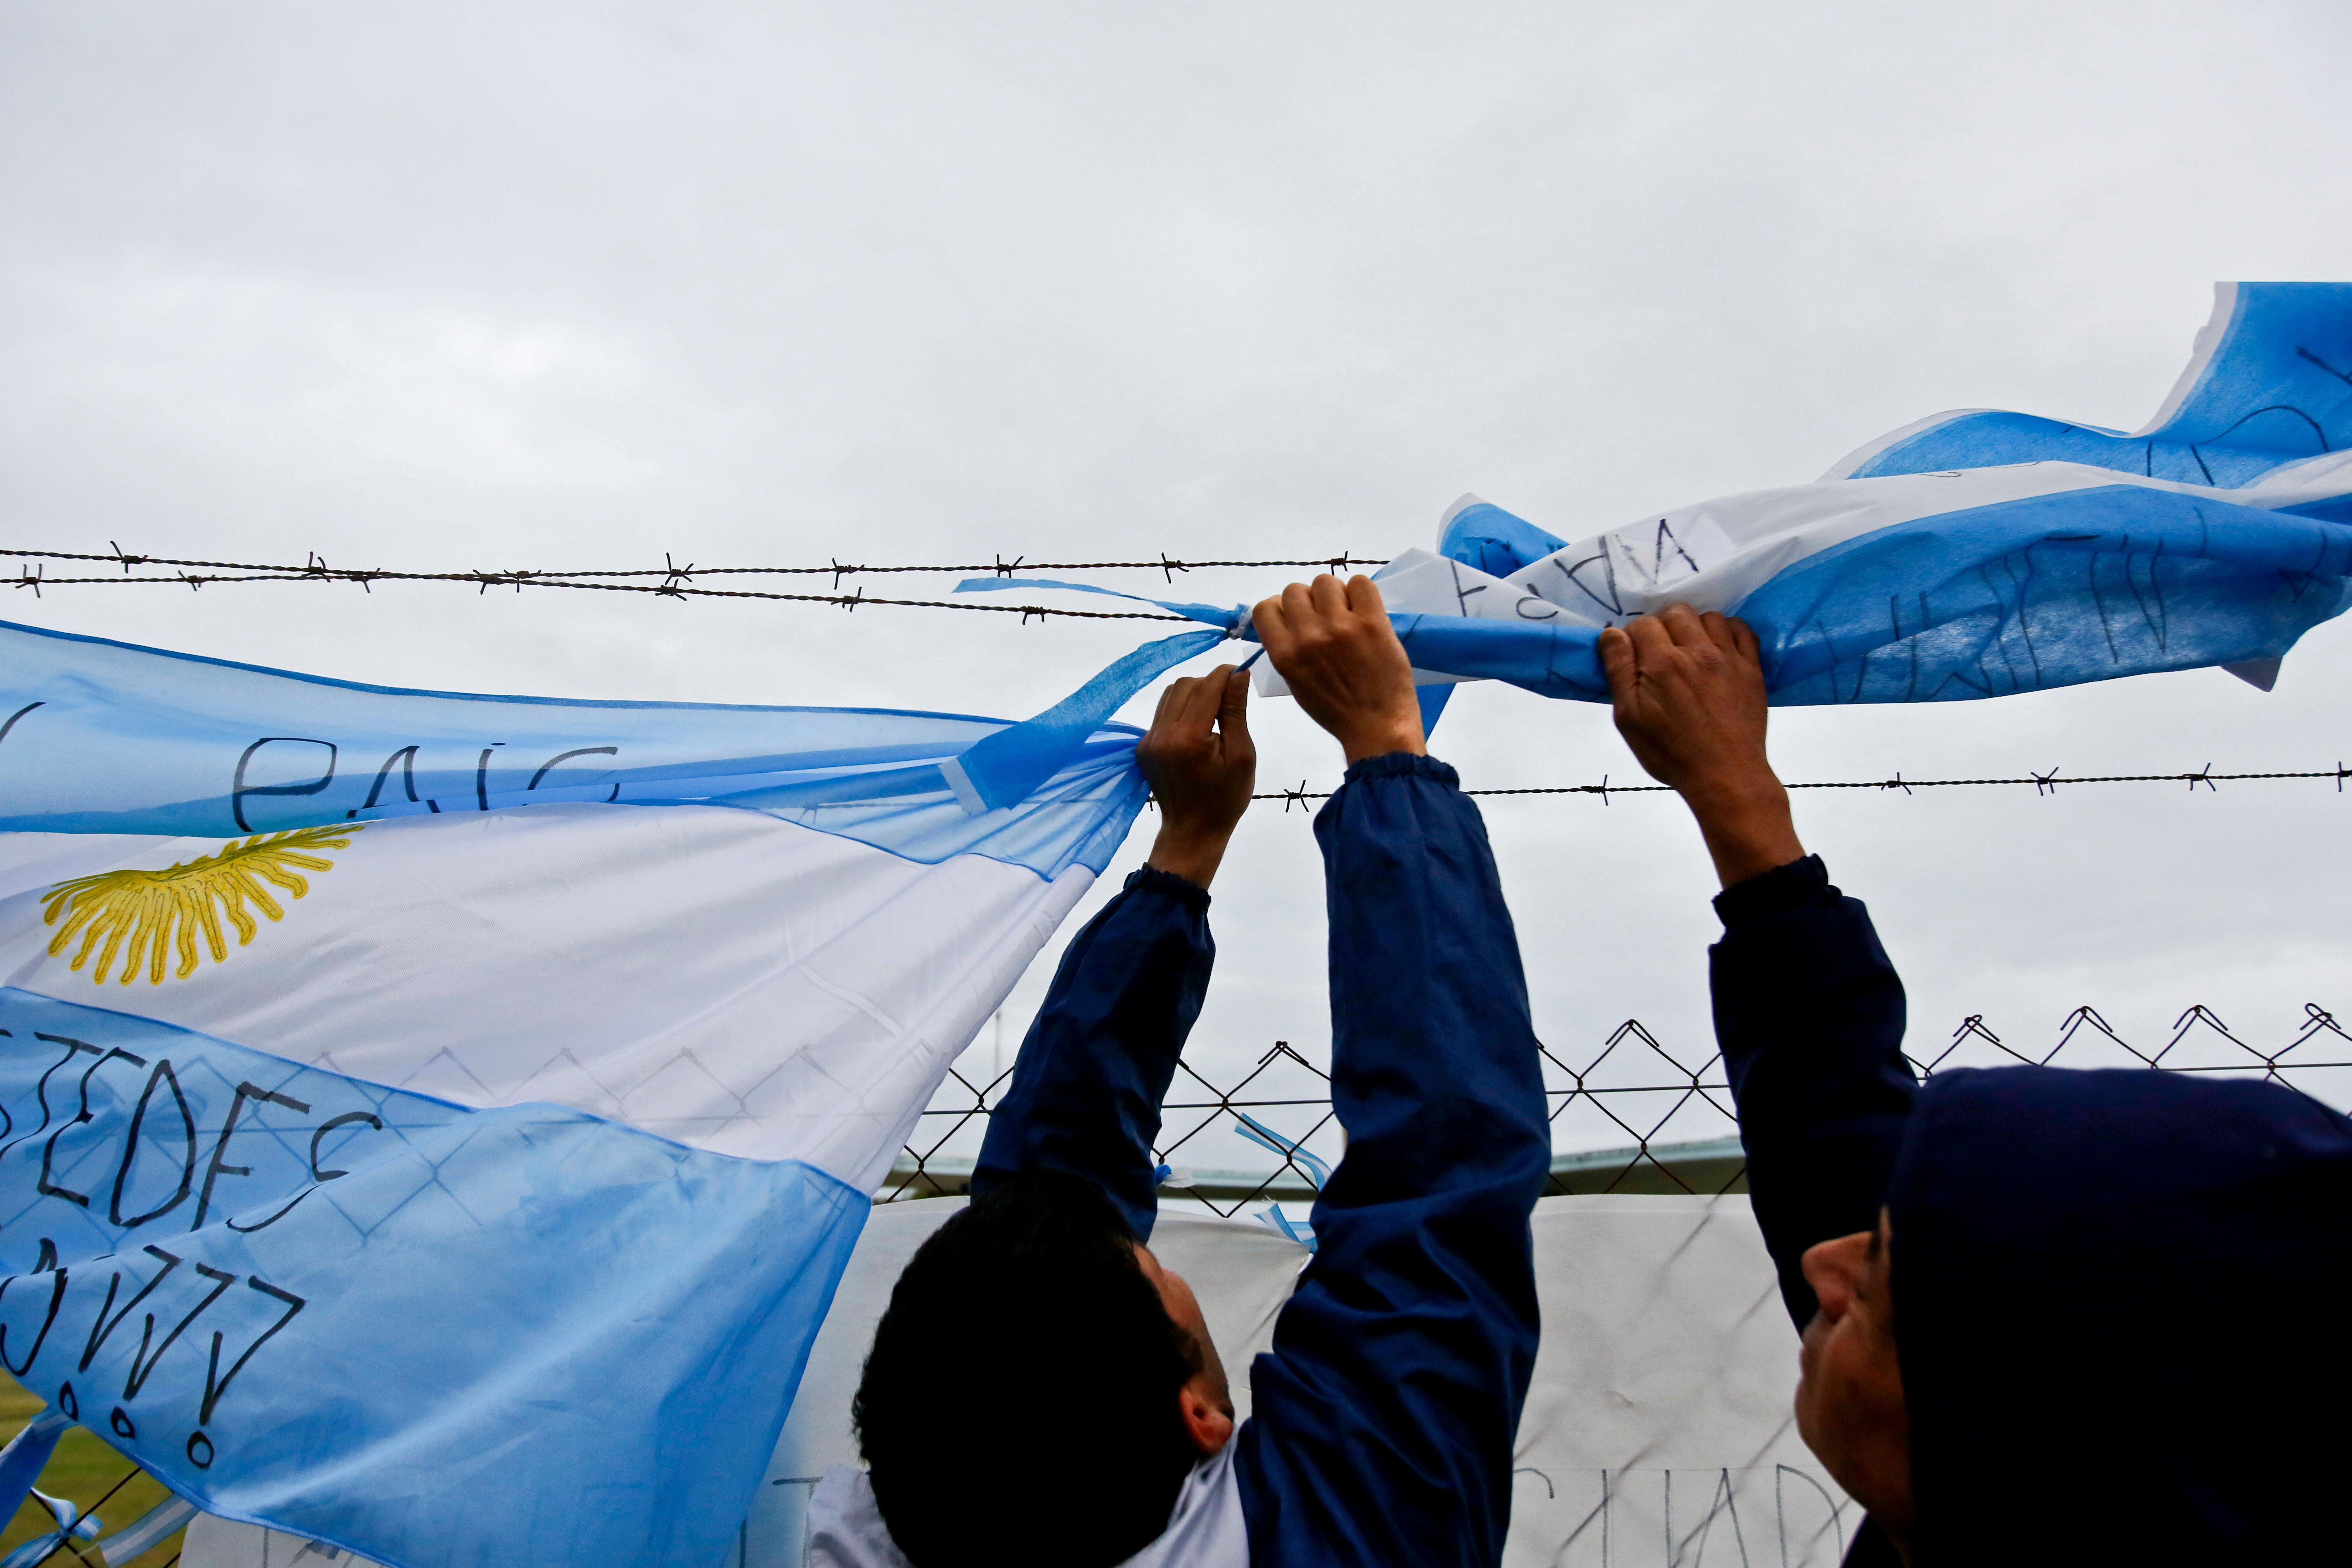 Men hang an Argentine flag on a fence at the Mar de Plata Naval Base after the navy announced a sound detected during the search for the missing ARA San Juan submarine is consistent with that of an explosion, in Mar de Plata, Argentina, Thursday, Nov. 23, 2017. A Navy spokesperson said the search will continue until there is full certainty about the fate of the submarine, adding there was no sign the explosion might be linked to any attack. (AP Photo/Esteban Felix)